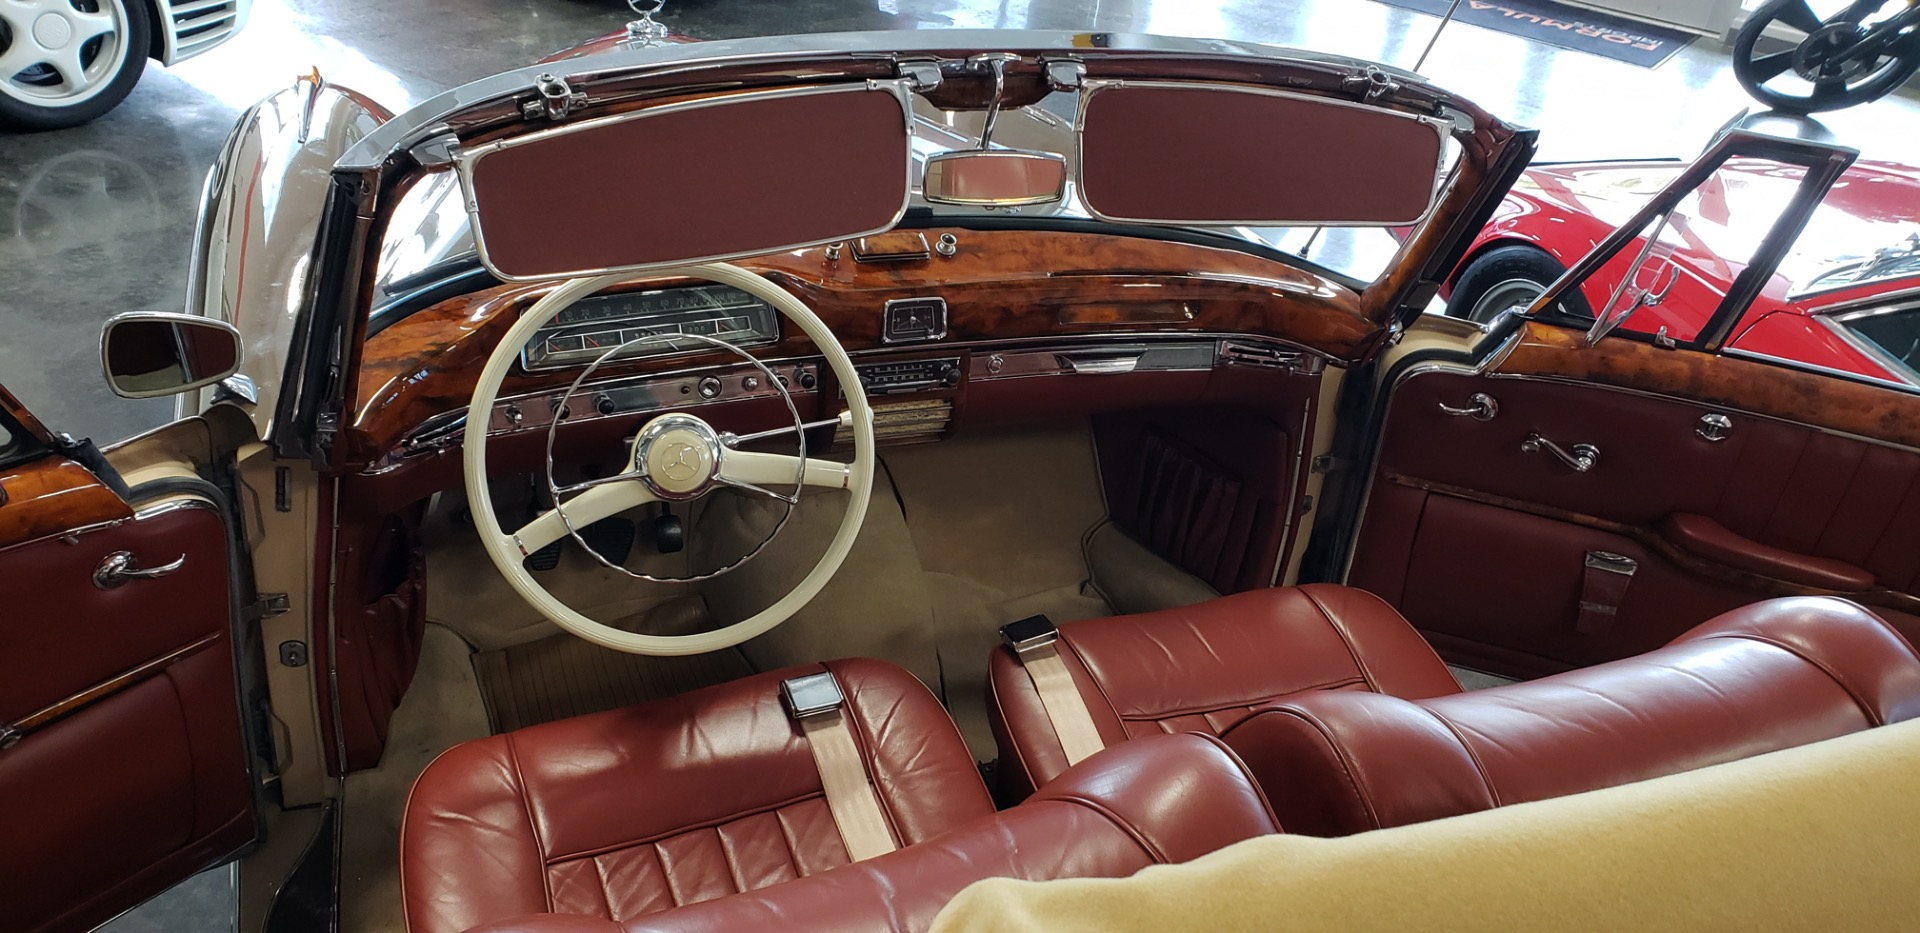 Used 1957 Mercedes-Benz 220 S Cabriolet - Full Restoration for sale Sold at Formula Imports in Charlotte NC 28227 35